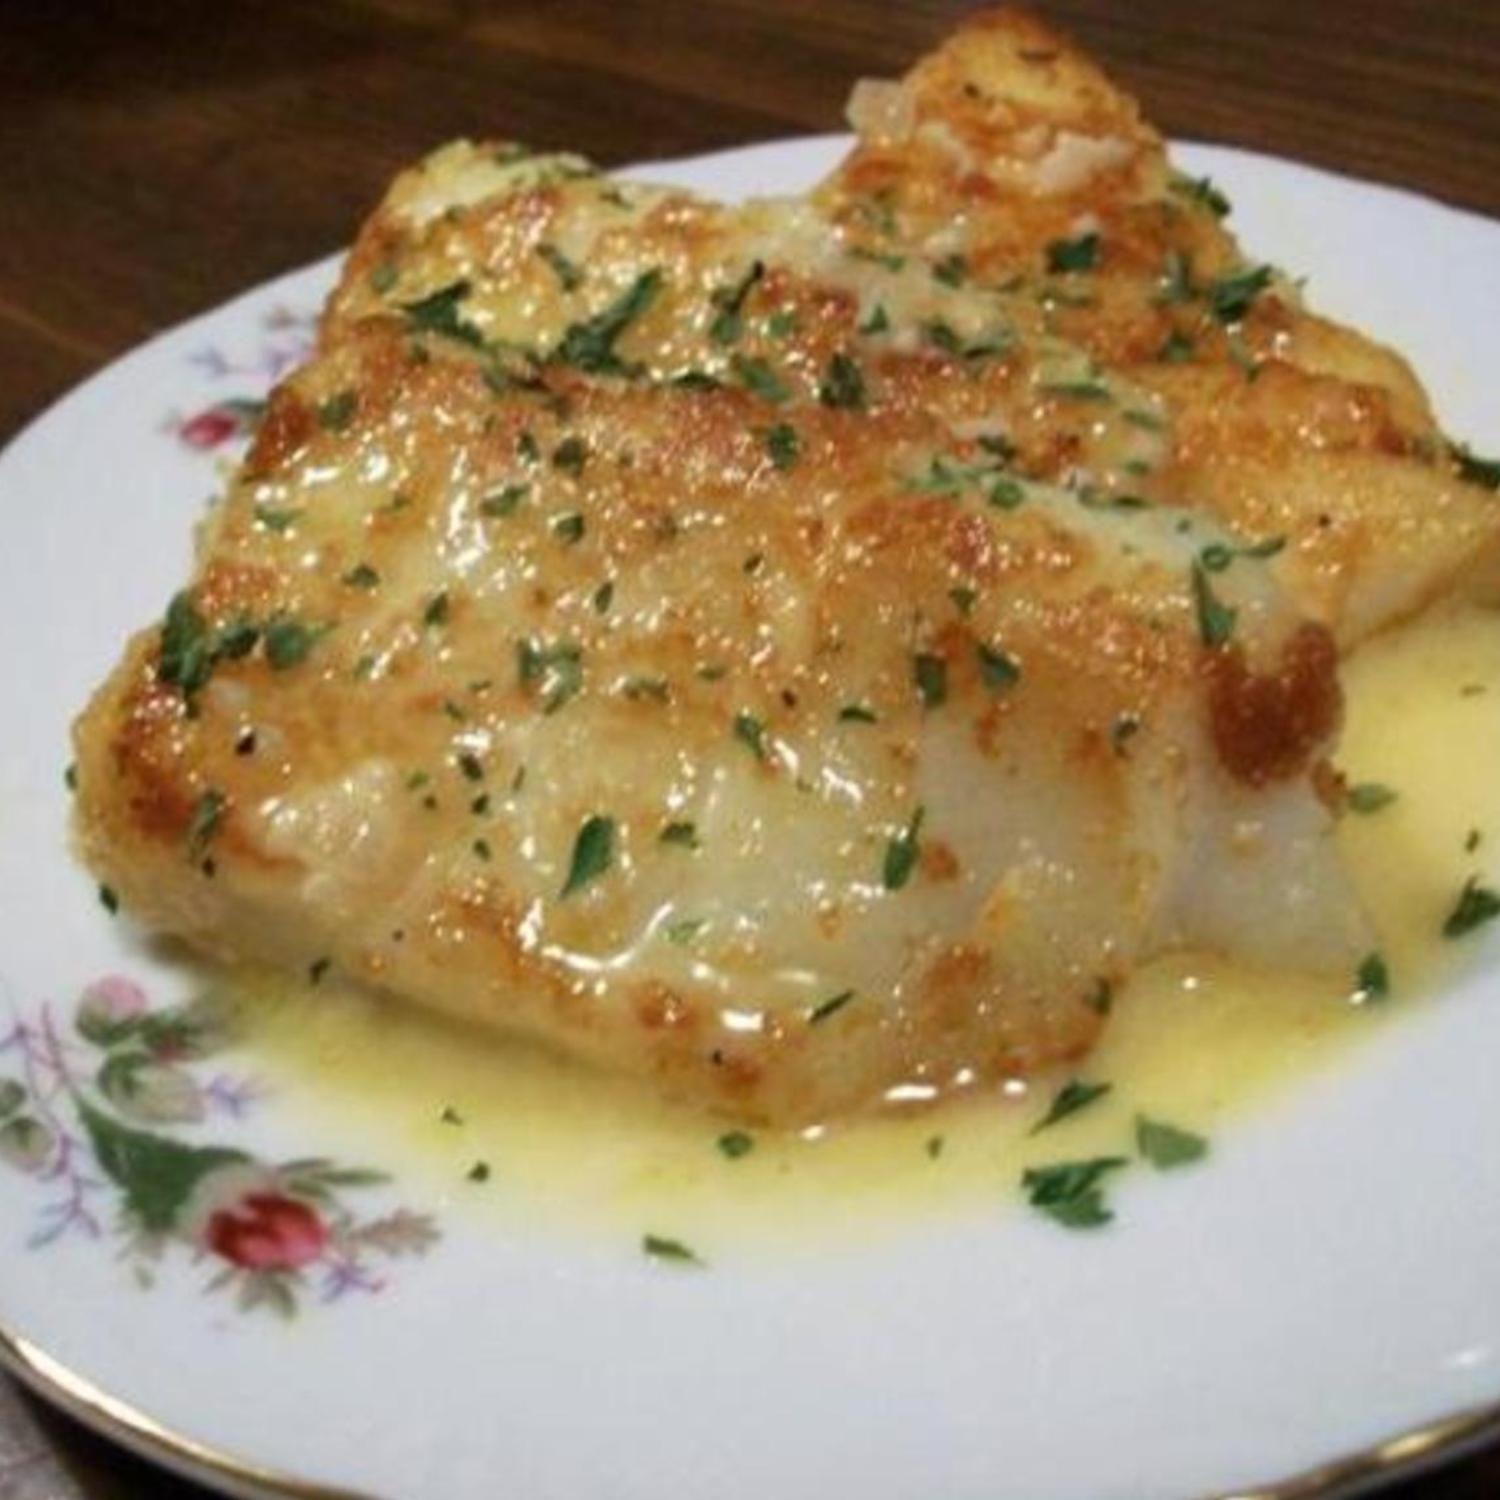 Baked cod recipe with lemon butter recipe baked cod for White fish recipe